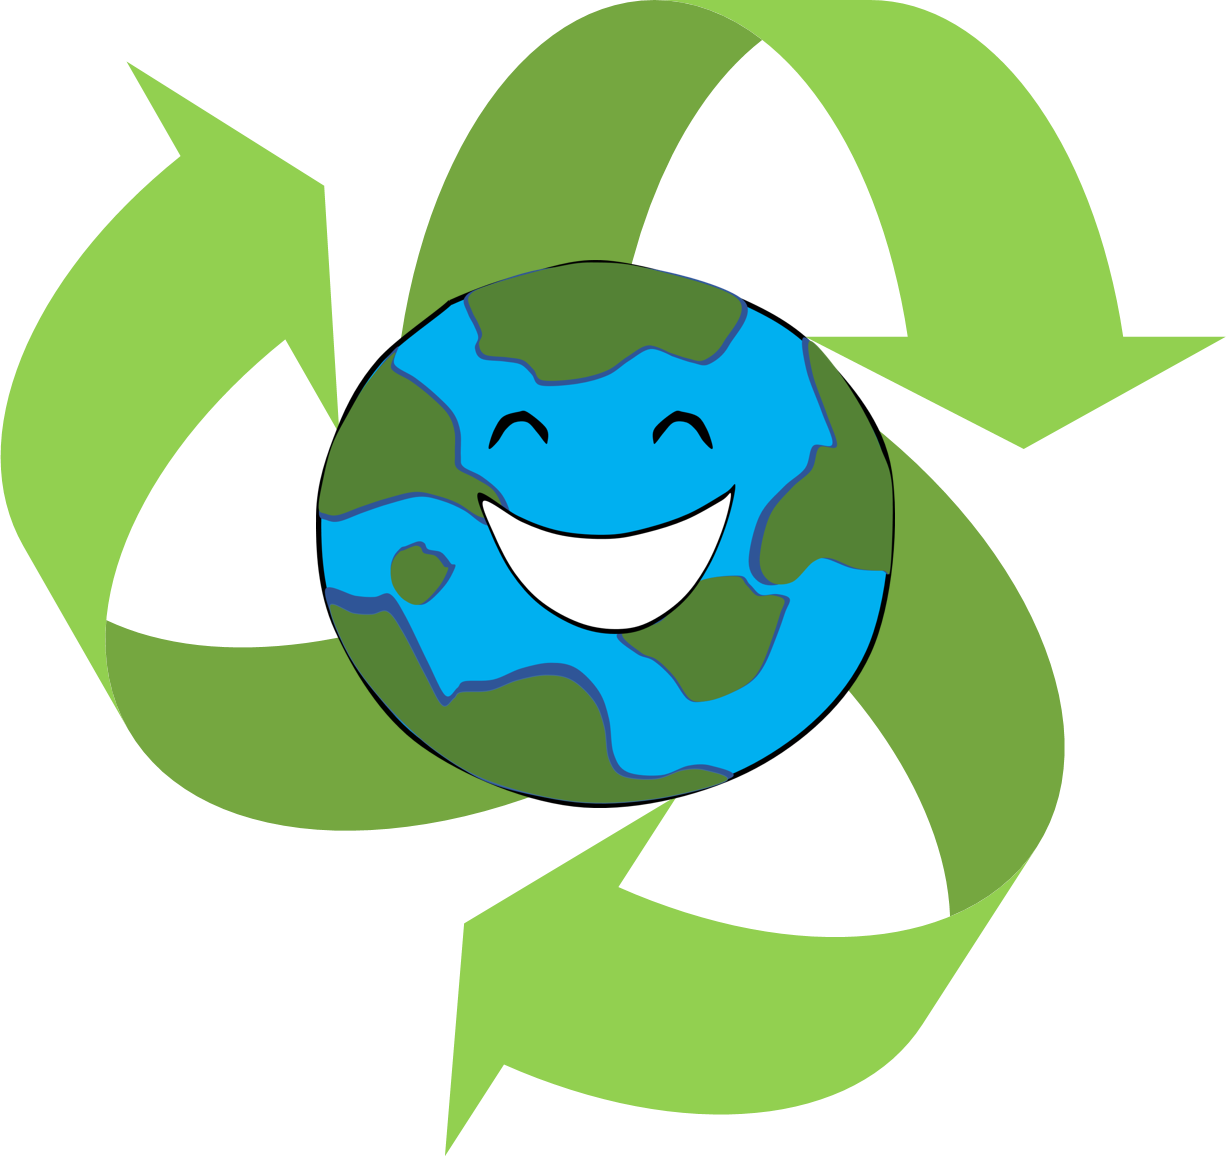 Reduce reuse recycle club. Snake clipart bmp